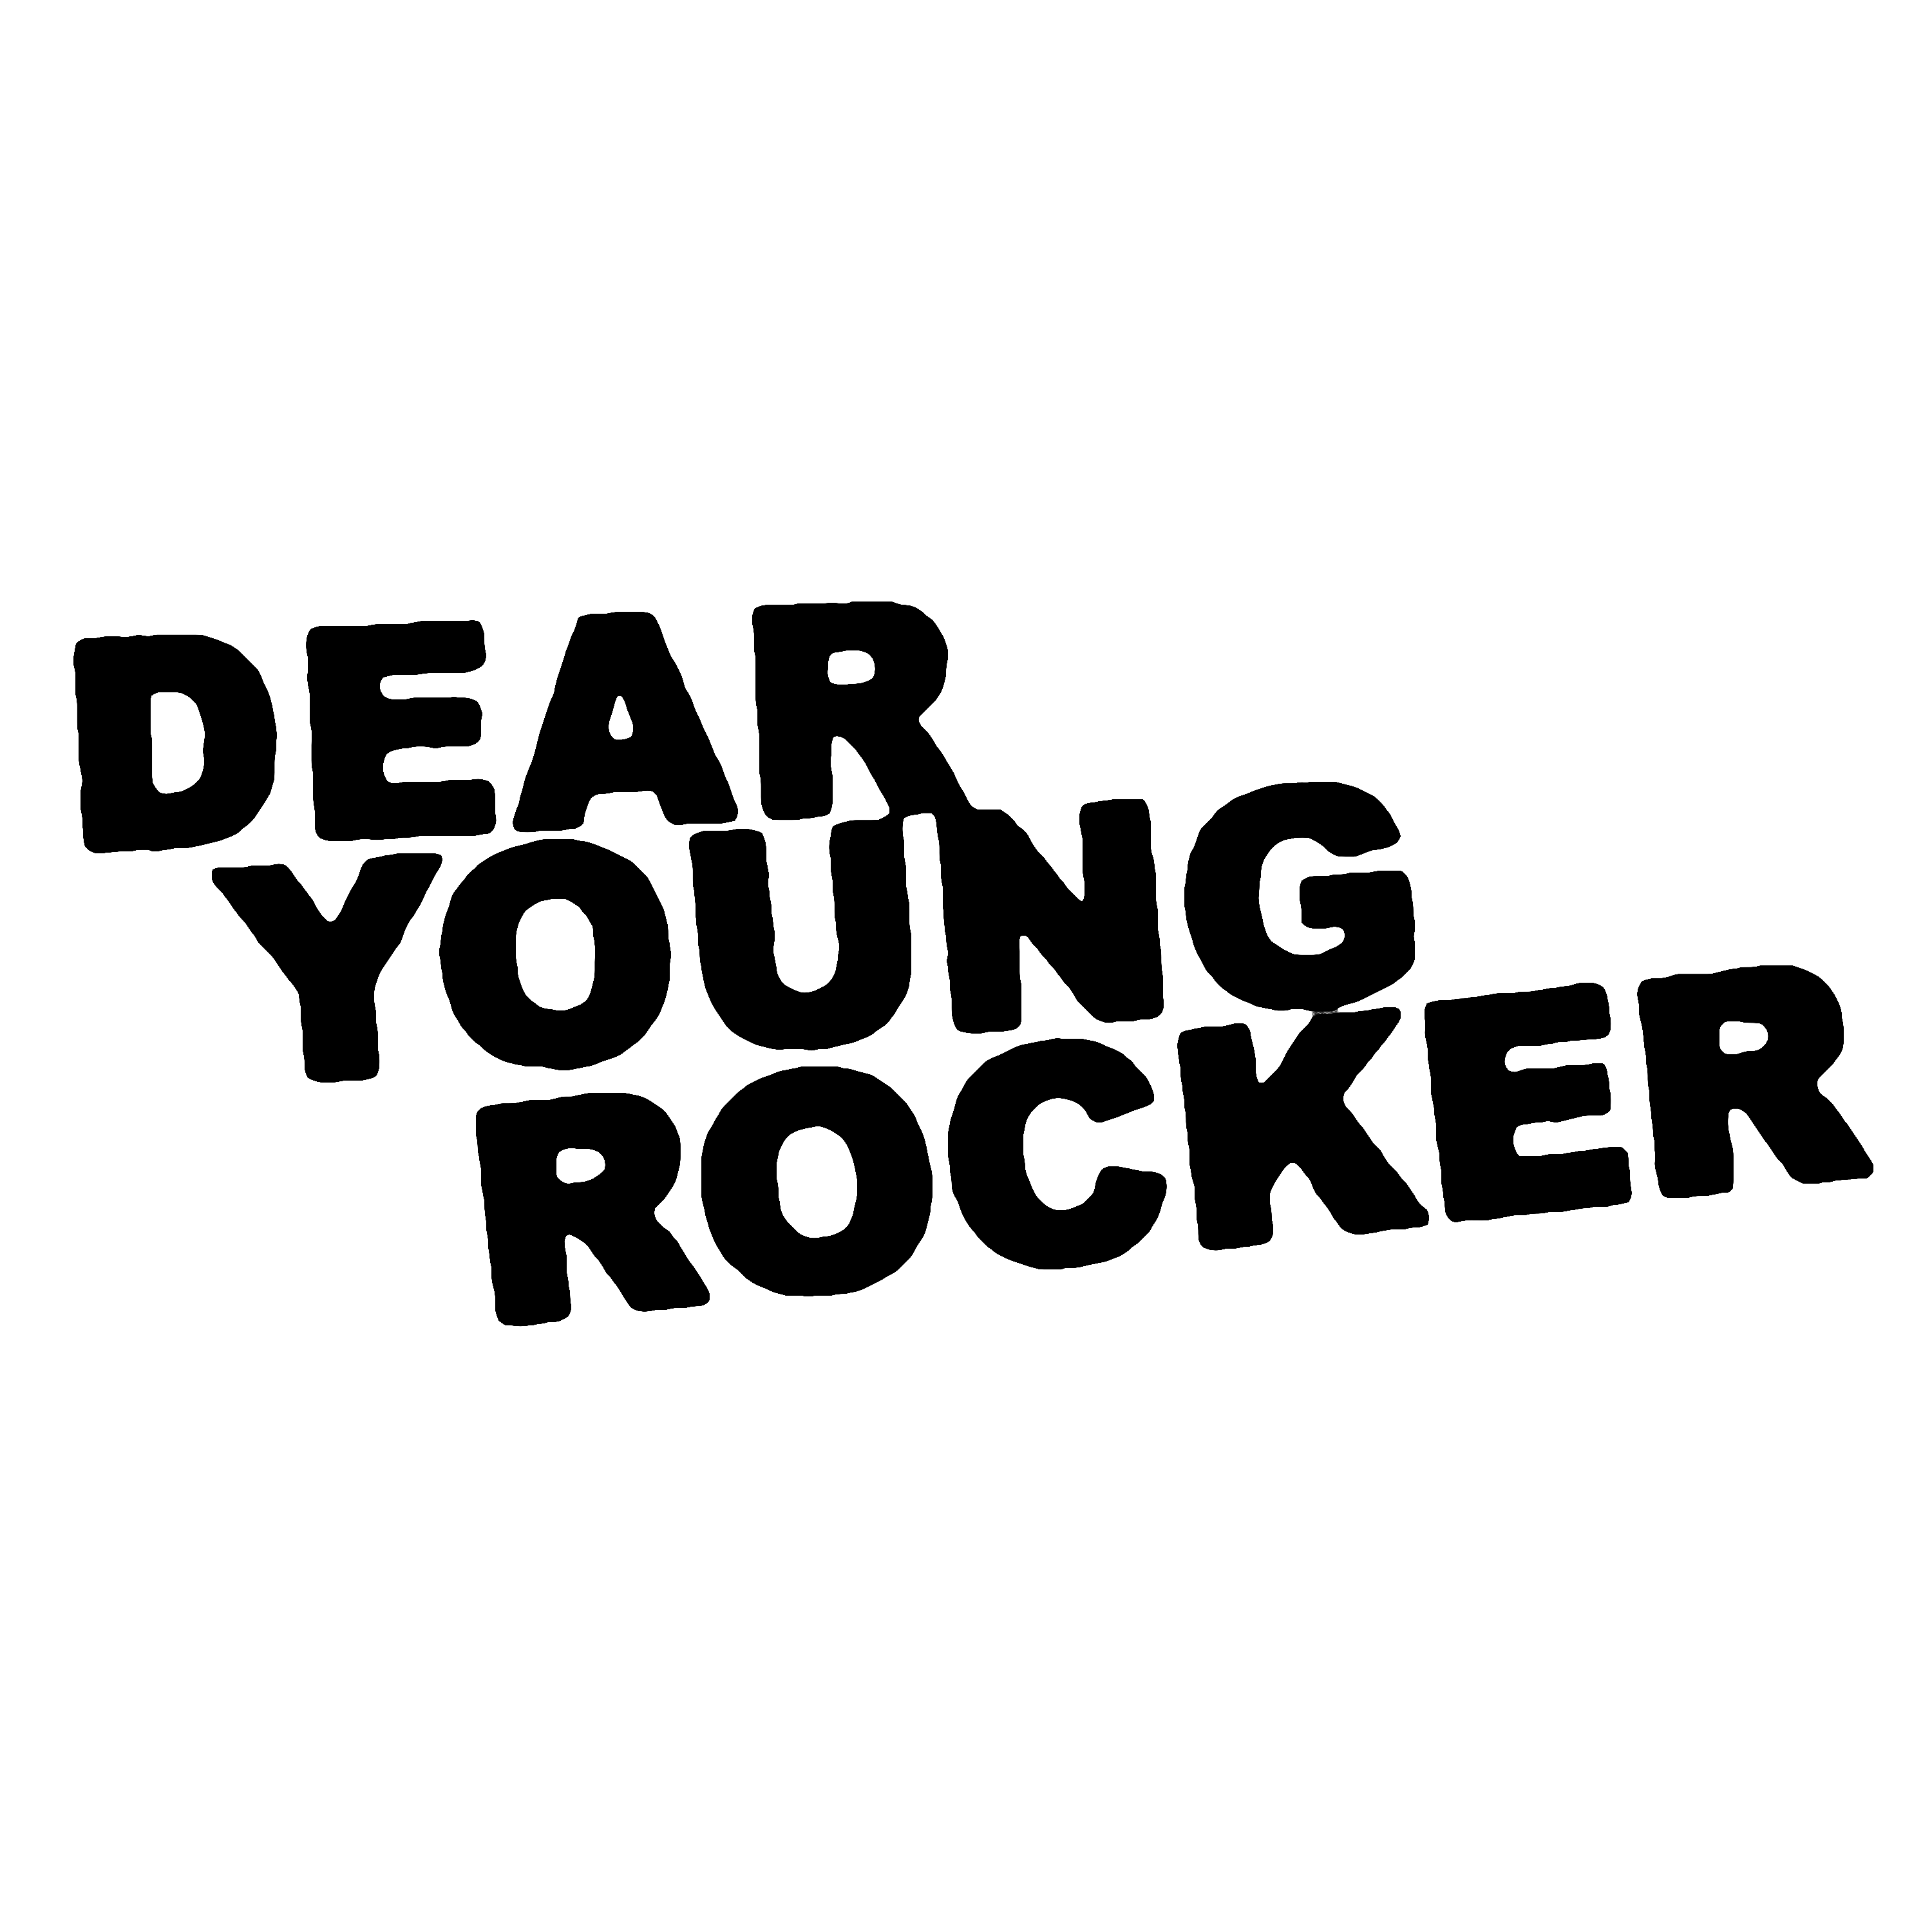 Dear Young Rocker album art